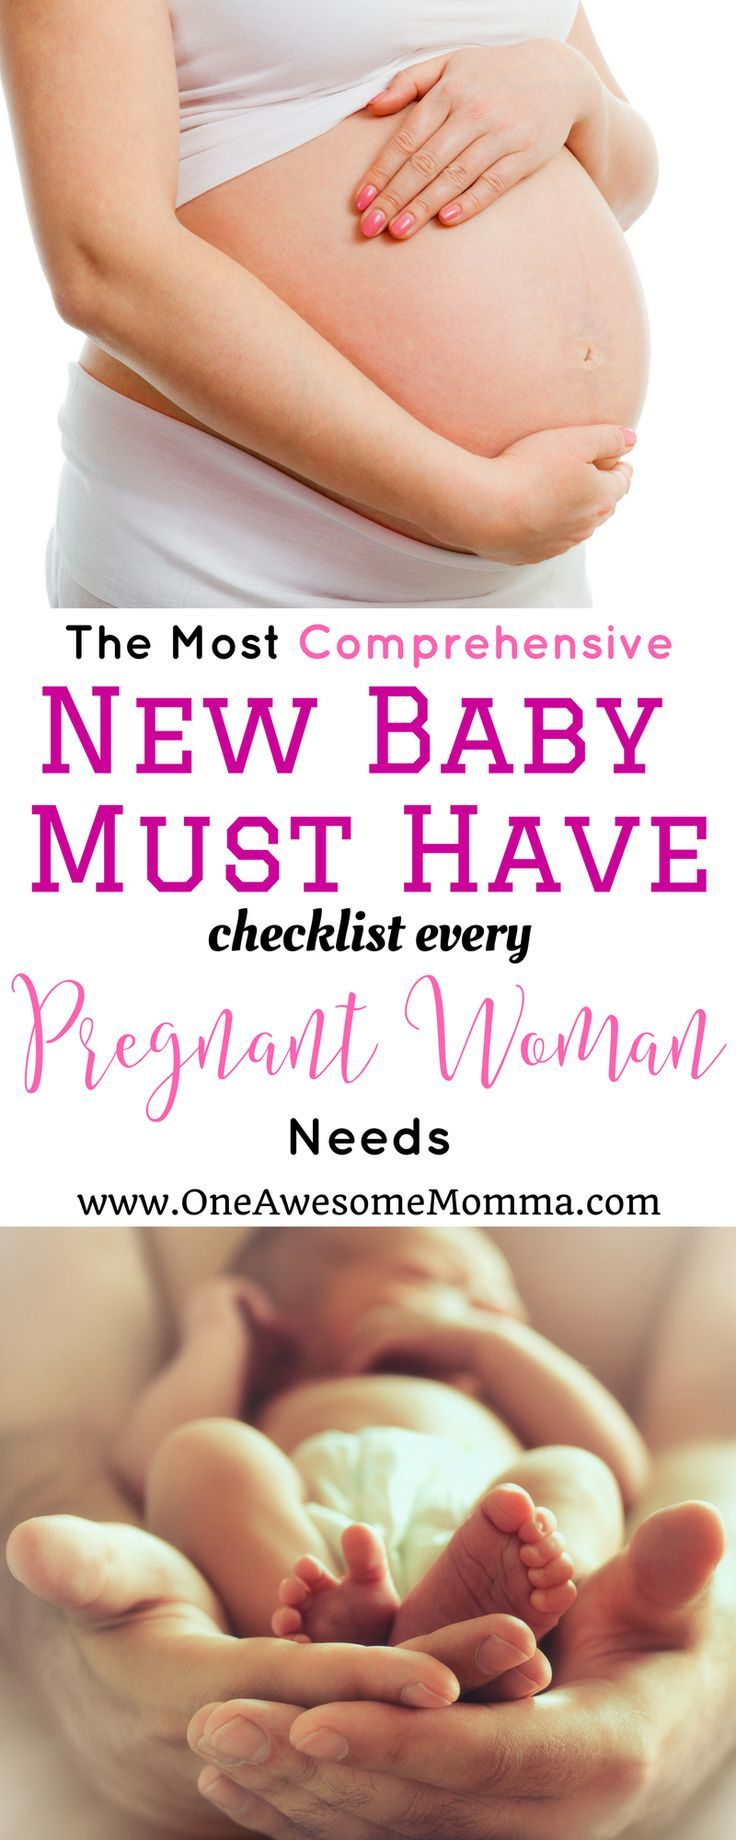 Pregnant? Preparing for a new baby can be overwhelming. This is the ultimate list every mom needs; has the complete list of essential items every mom must get for your baby's arrival. | new baby checklist | baby registry | baby registry checklist | pregnancy | baby shower gifts | first time pregnancy | mom to be must haves | pregnant must haves | new baby must haves | pregnancy must haves | new baby checklist newborns | newborn must haves | newborn must haves list | first time mom | newborn…